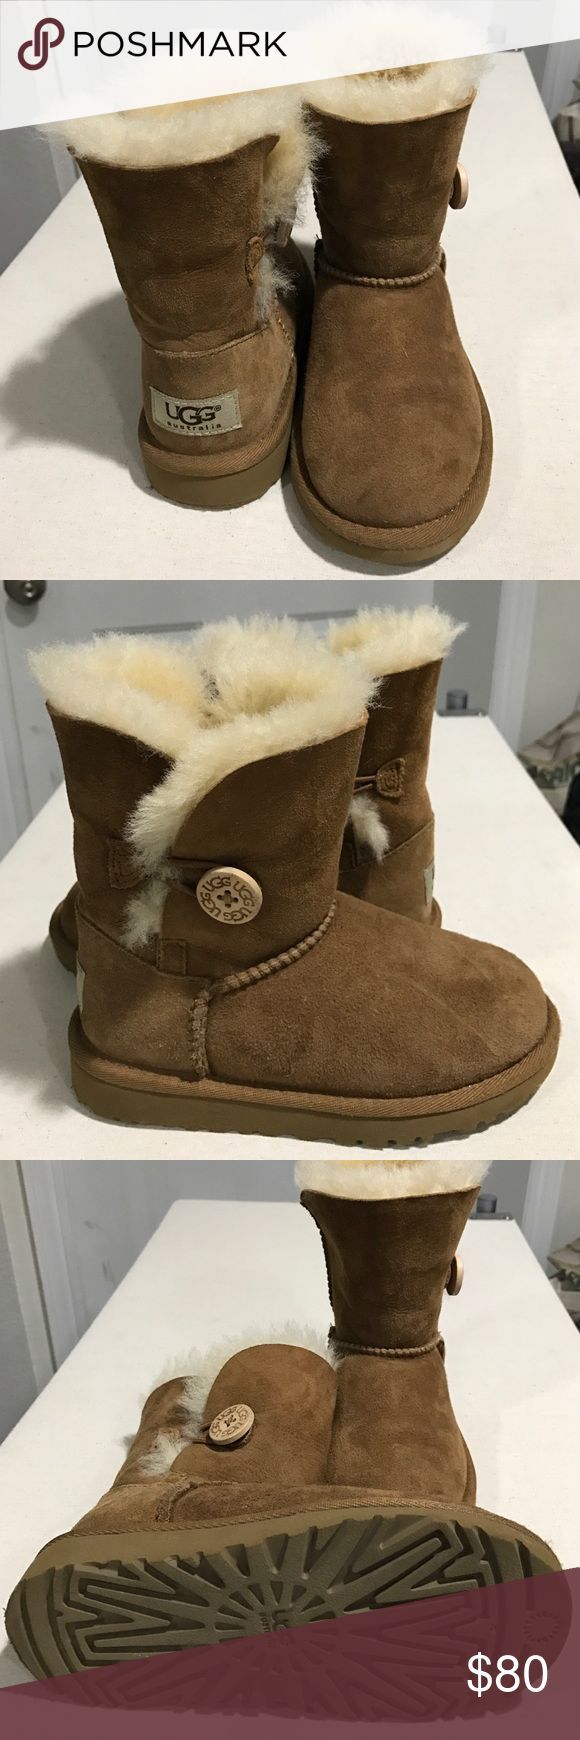 Children's Ugg boots with button sides Super cute tan Ugg boots for your little one! Gently worn (maybe twice?).  One button on the outside of the ankle. So warm and fuzzy and perfect for any little fashionista!!!! Comes from a home with dogs so may have tiny hairs that traveled through the air.  Does not come with box. Firm on price. Thank you :) UGG Shoes Boots